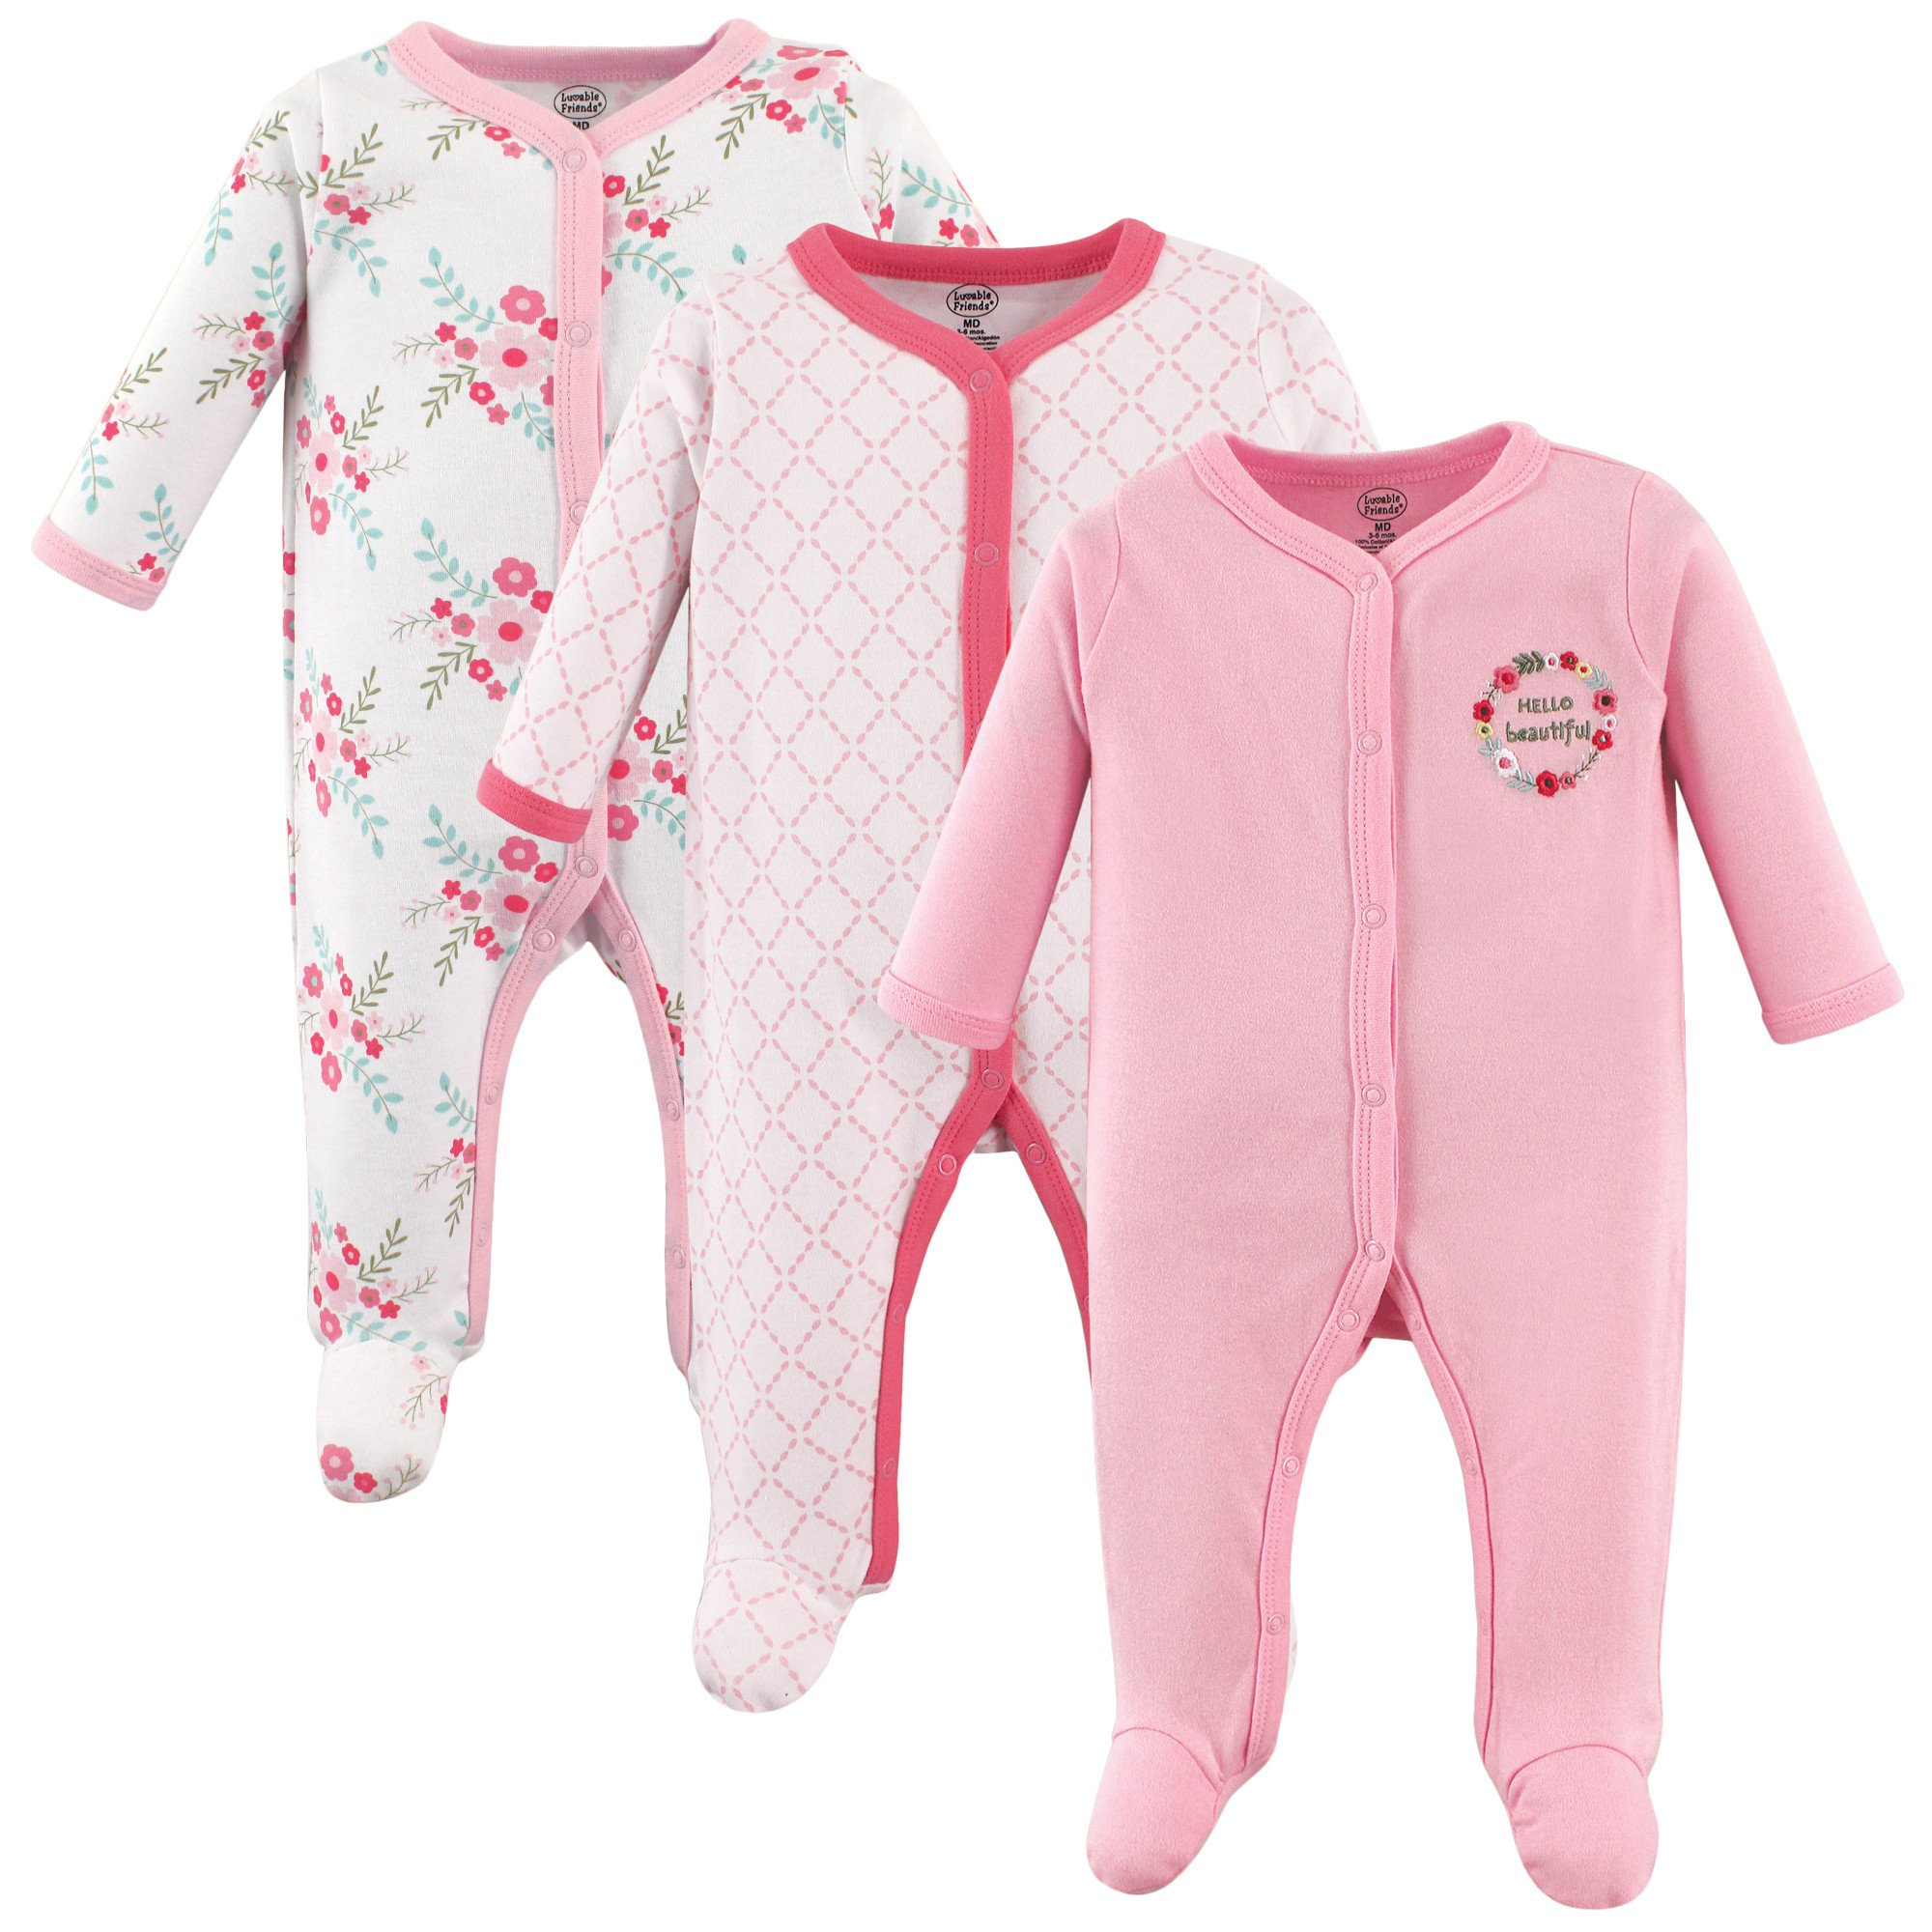 Luvable Friends Unisex Baby Sleep and Play, Pink Floral 3-Pack, 3-6 Months (6M)